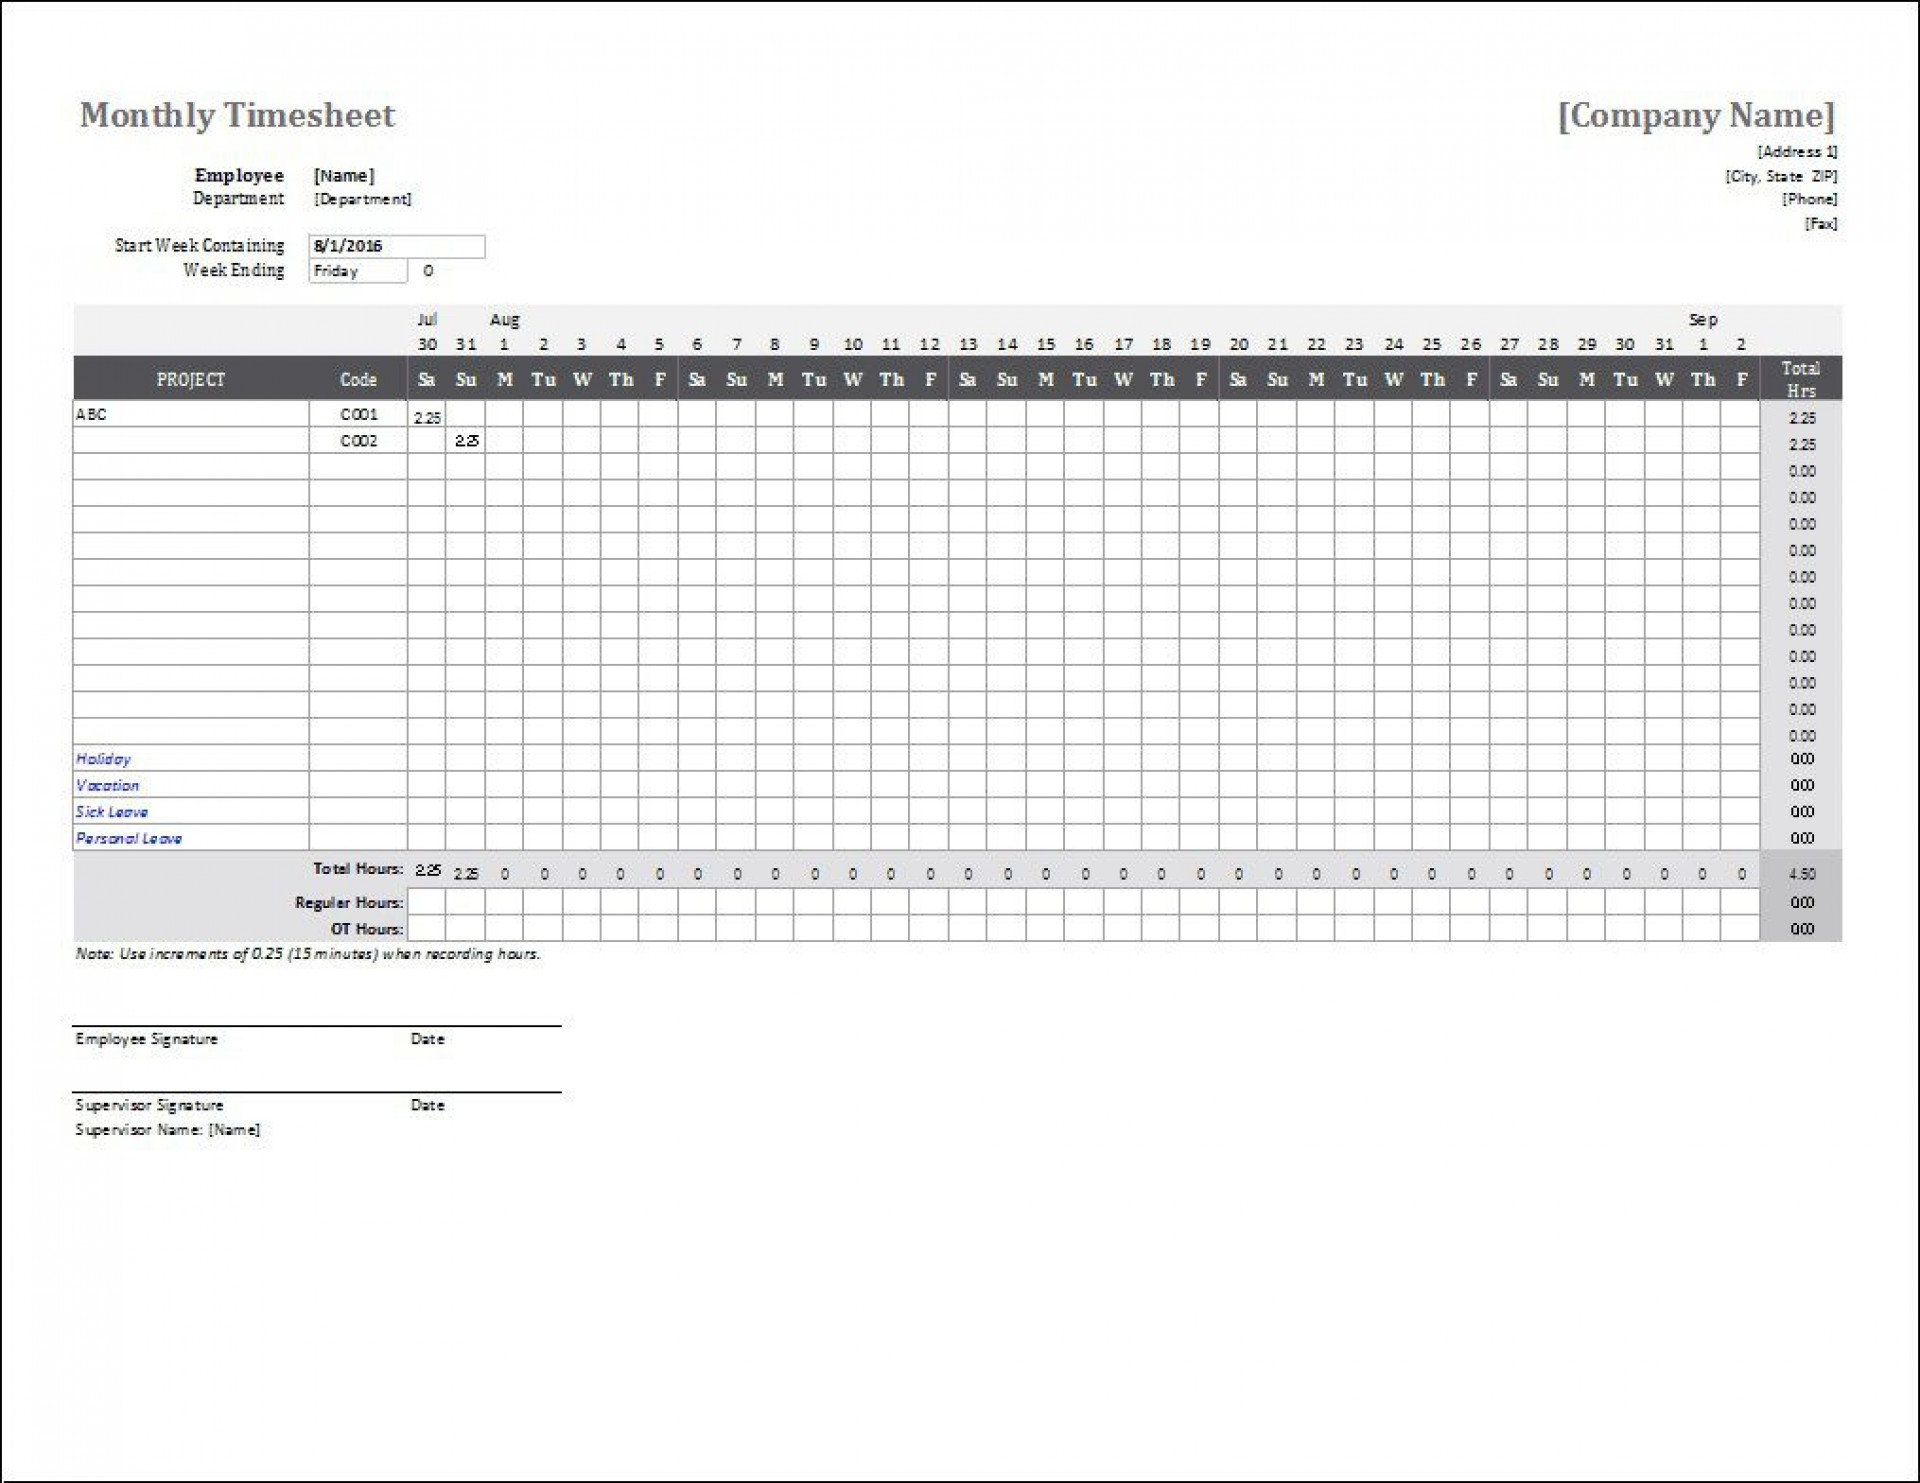 004 Phenomenal Time Card Template Free Picture  Calculator Excel Monthly Biweekly Timesheet1920